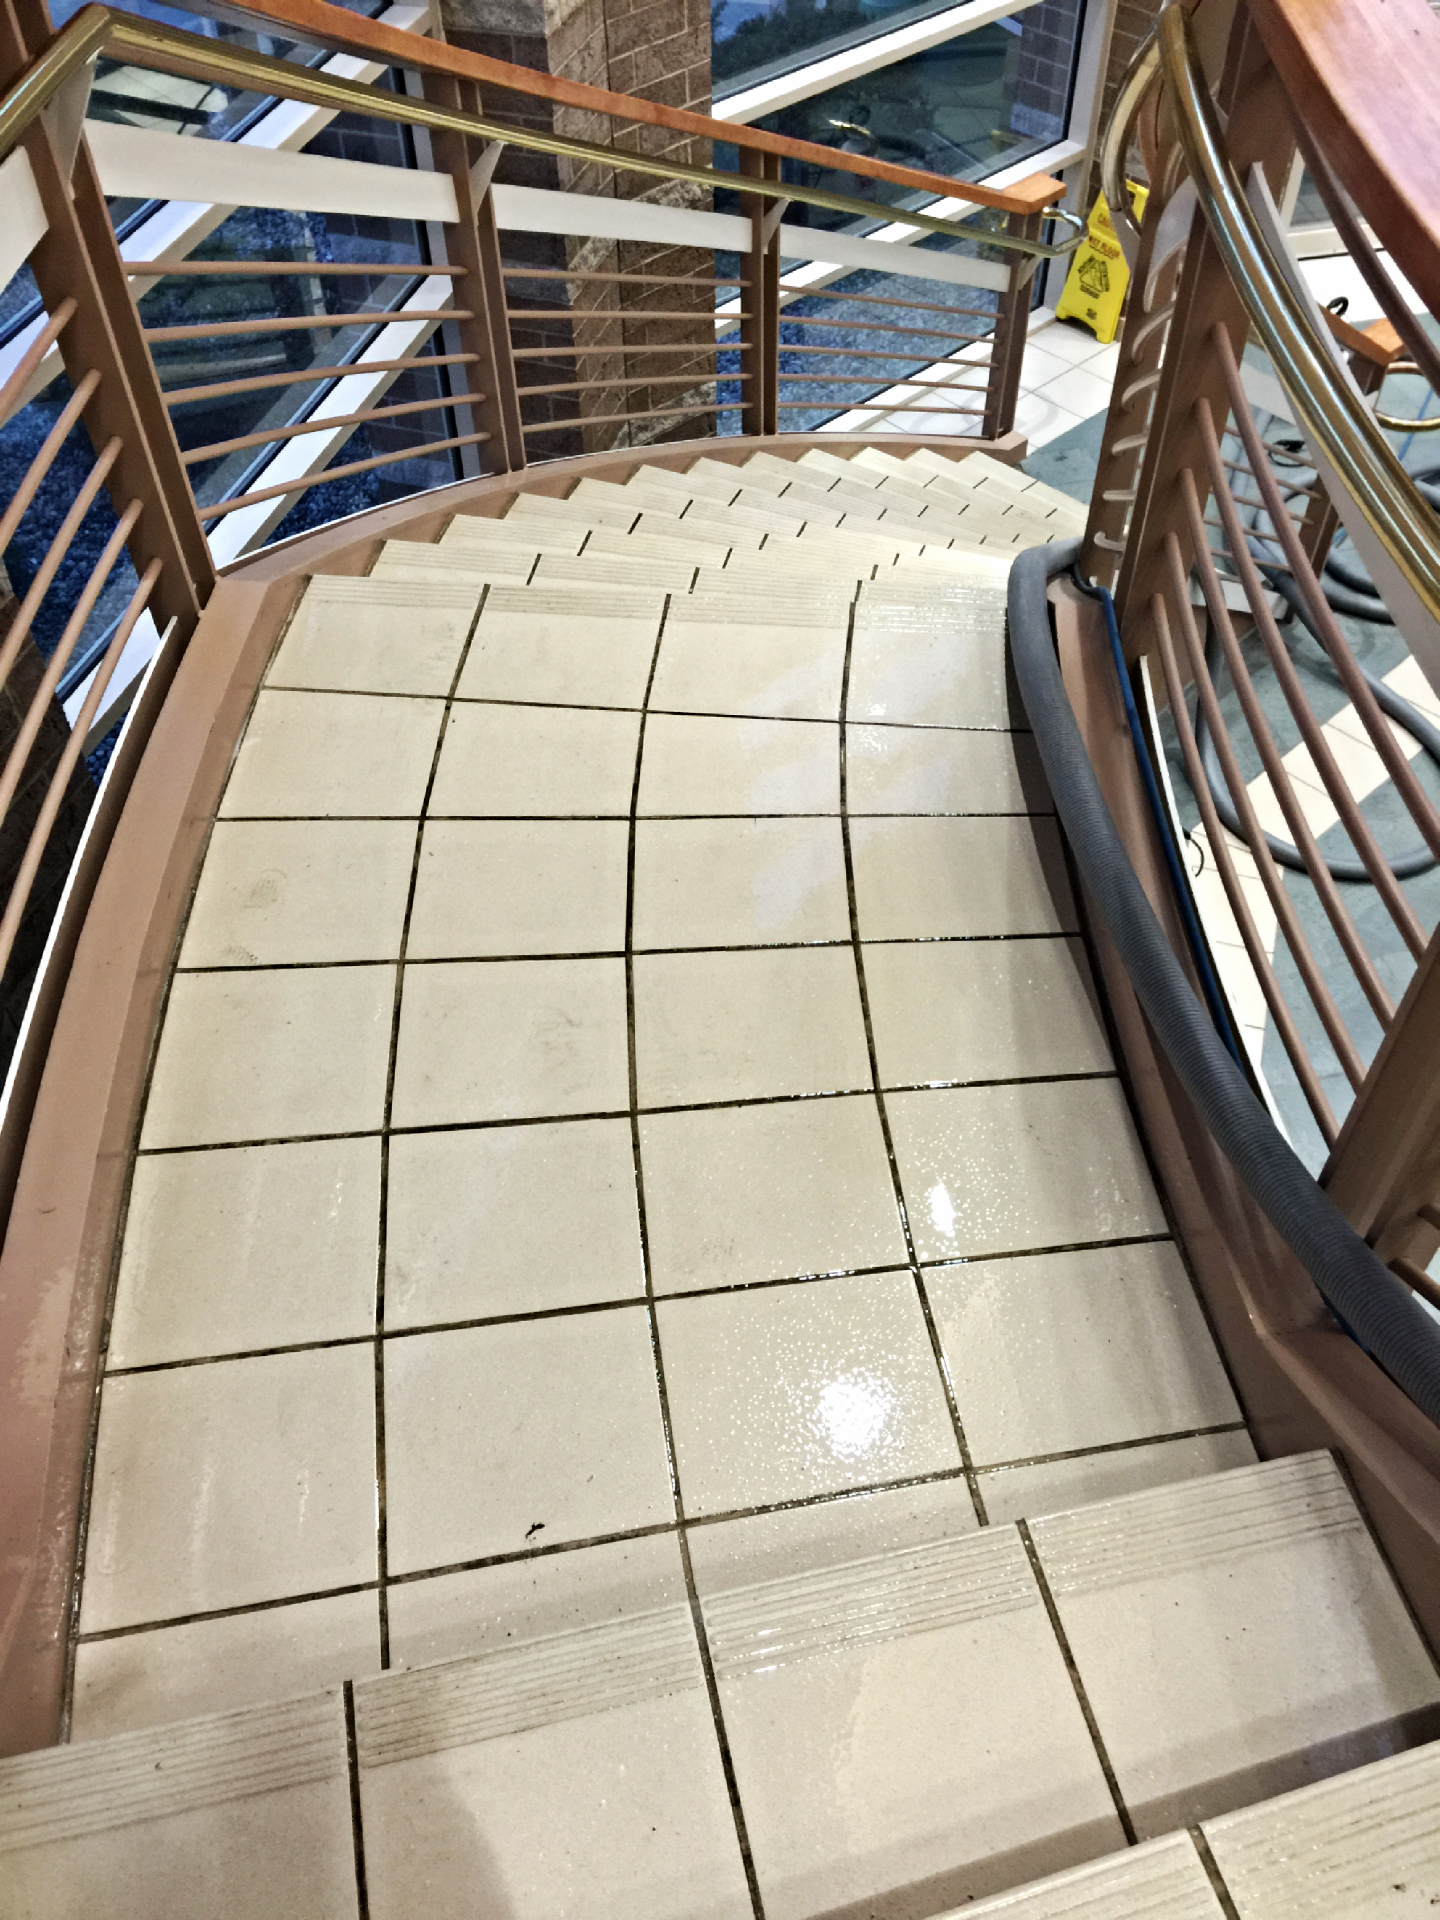 Tile Cleaning Kalamazoo